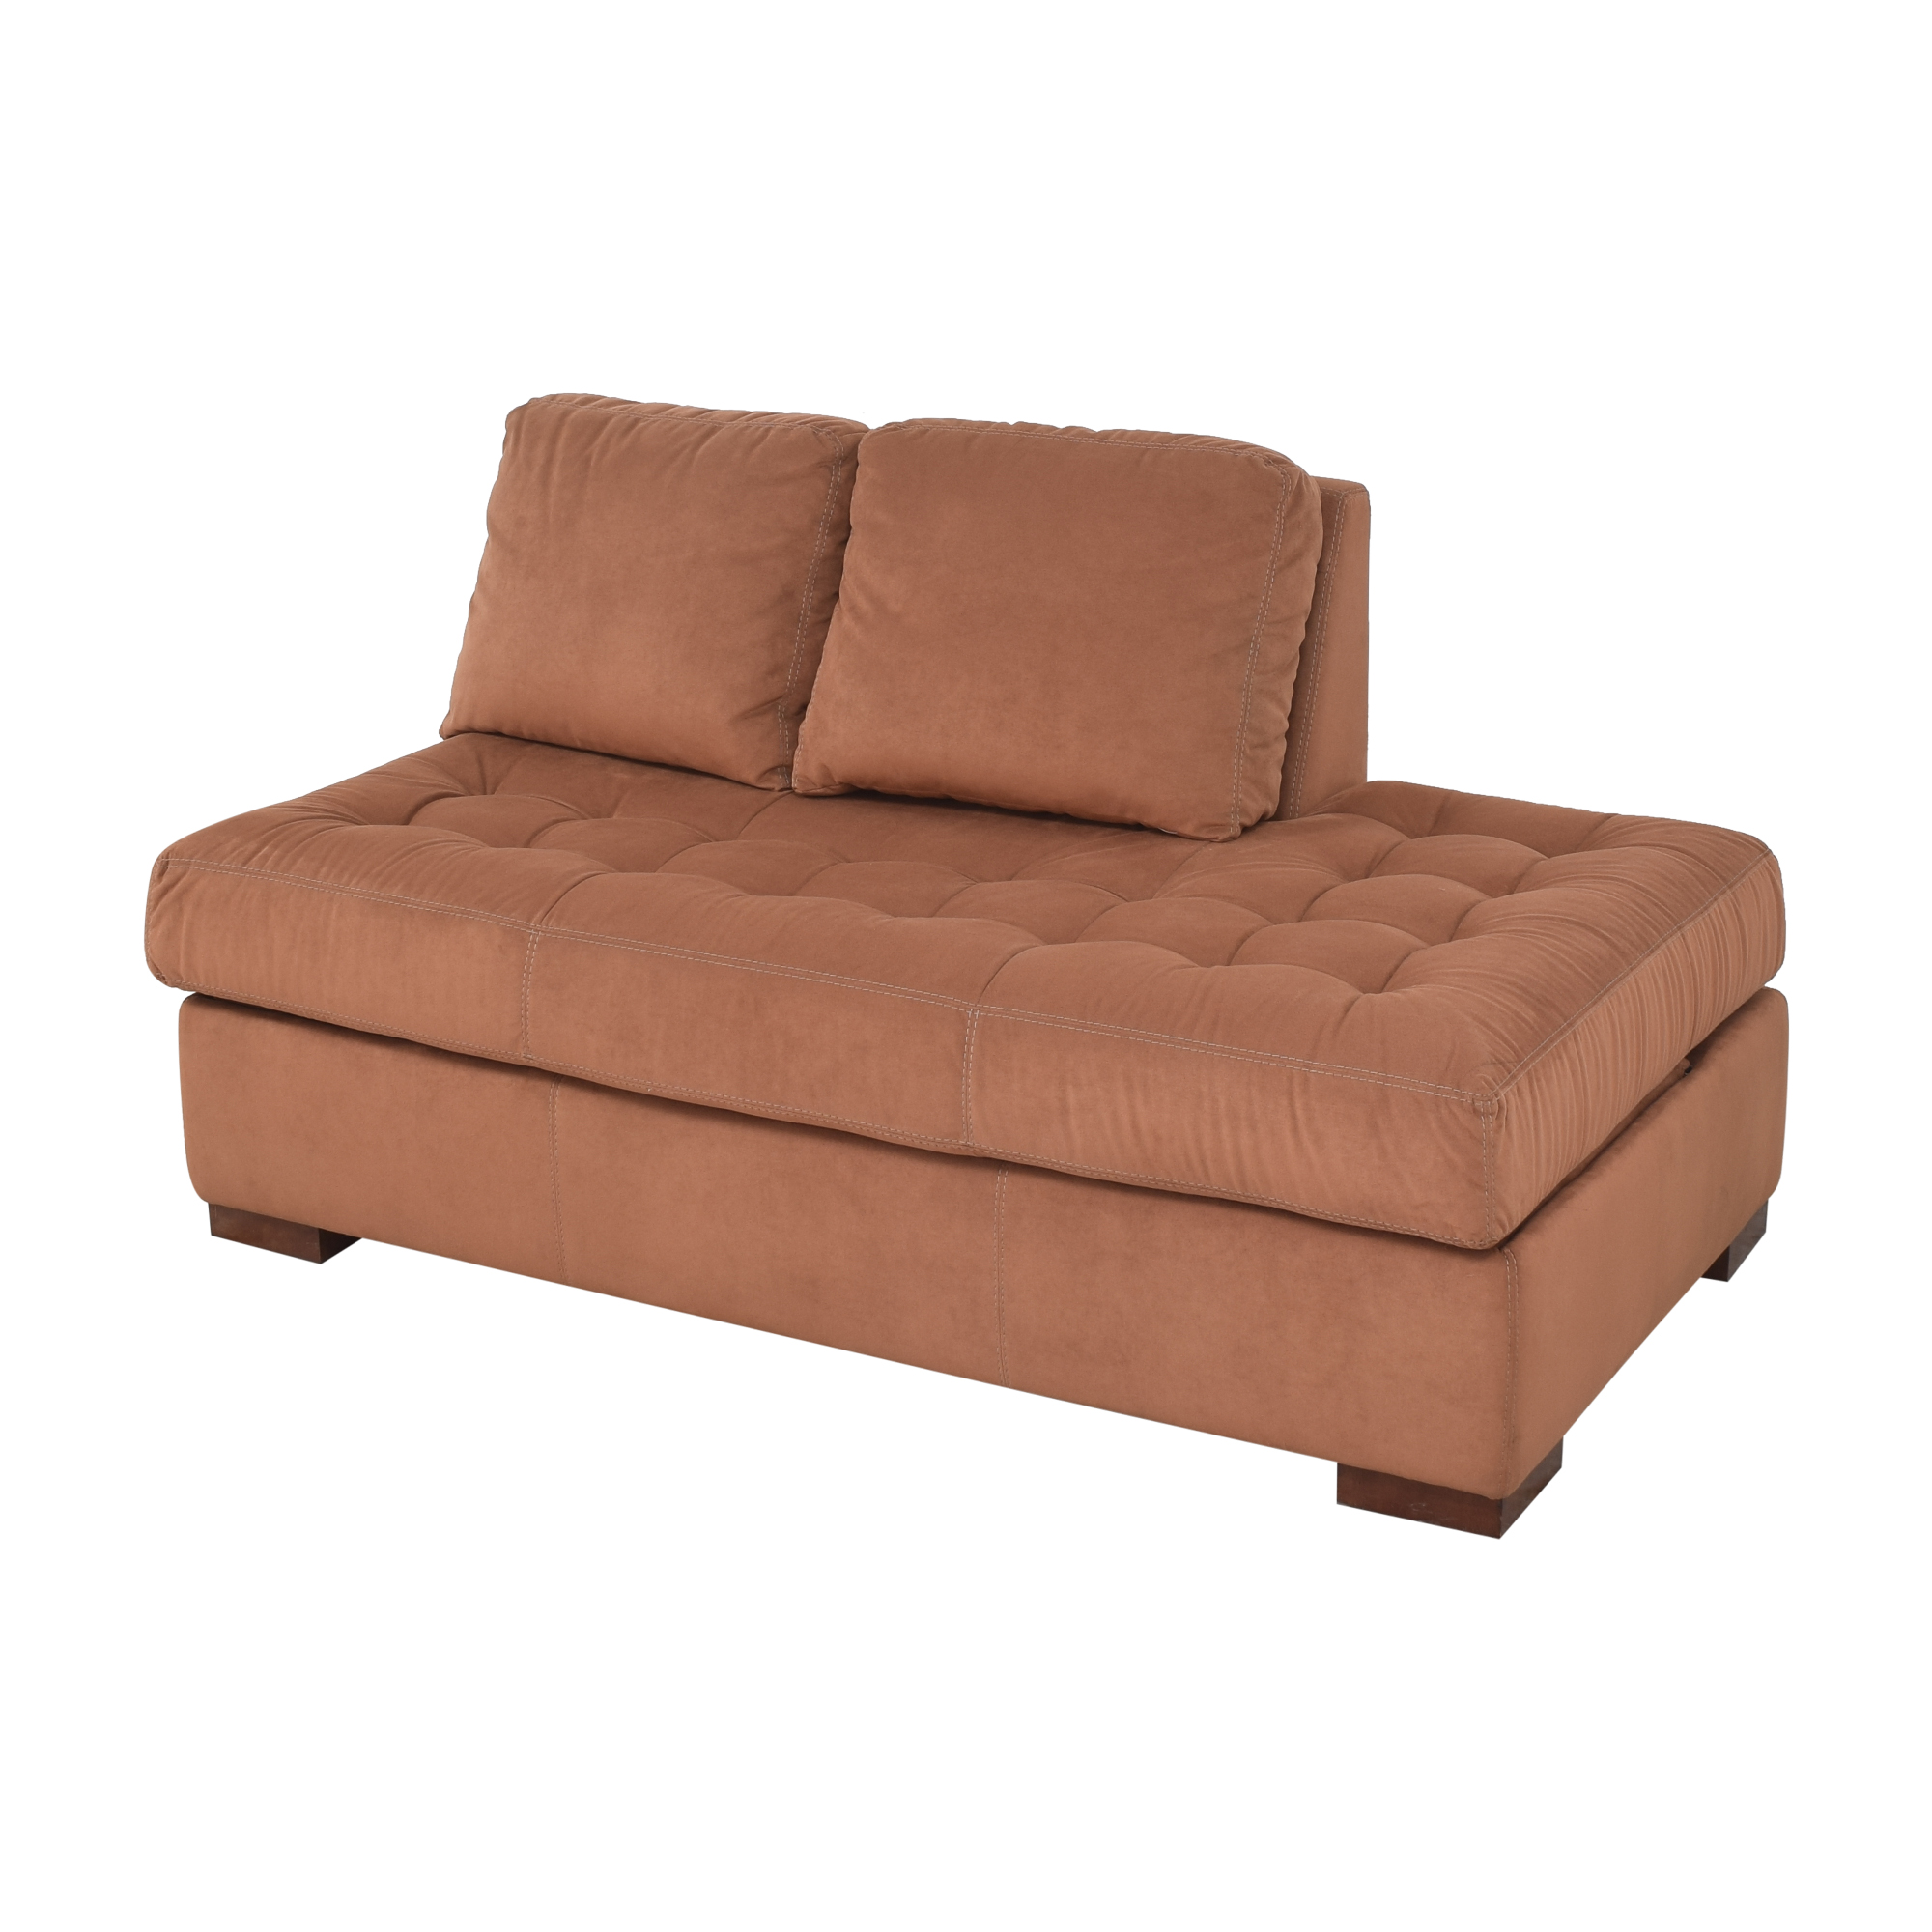 American Leather American Leather Tufted Storage Chaise price